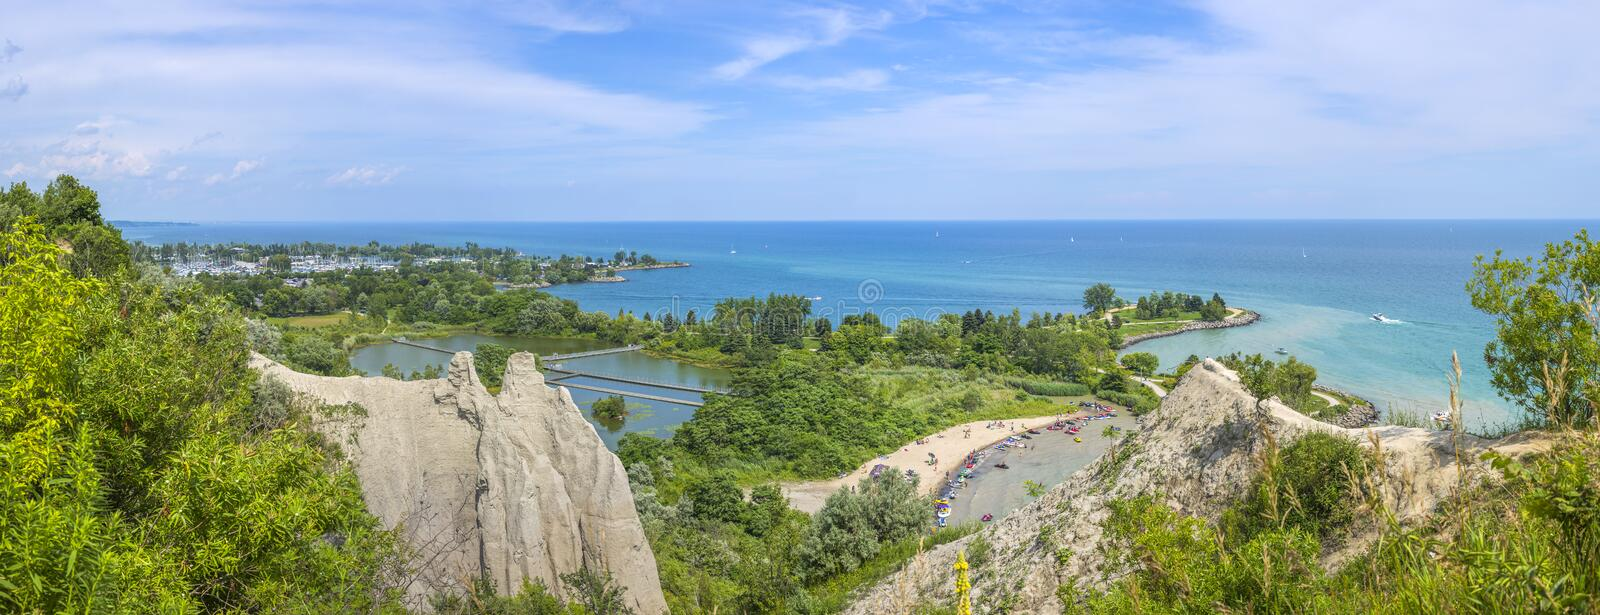 Panorama of Scarborough Bluffs. Toronto, Canada. Scarborough Bluffs Panorama in Toronto, Canada stock images